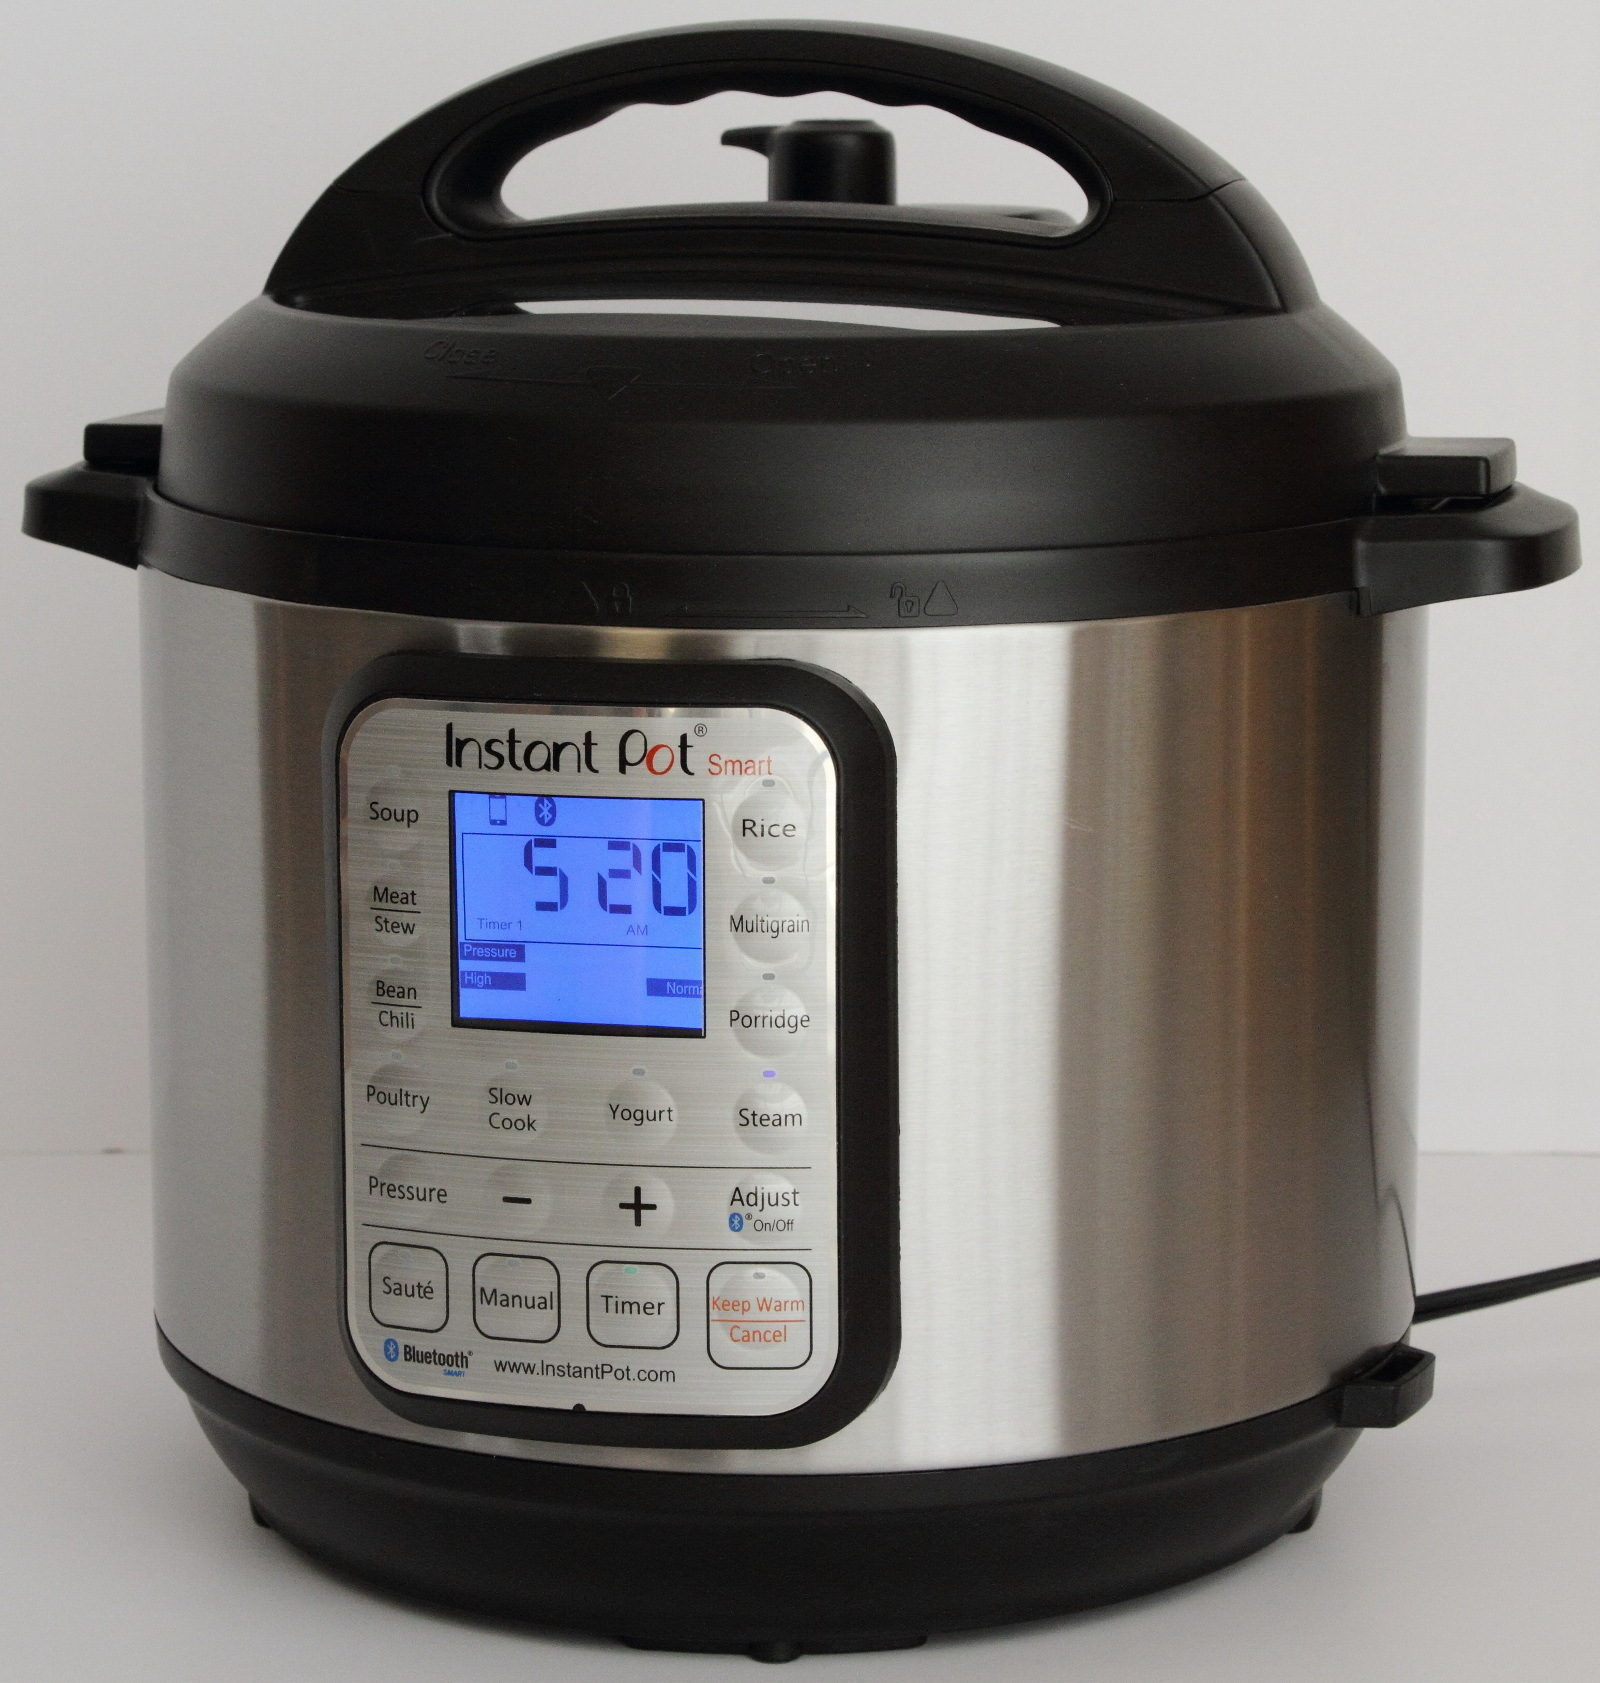 Instant Pot Pressure Cooker: Limited Number Of Instant Pot Pressure Cookers Recalled